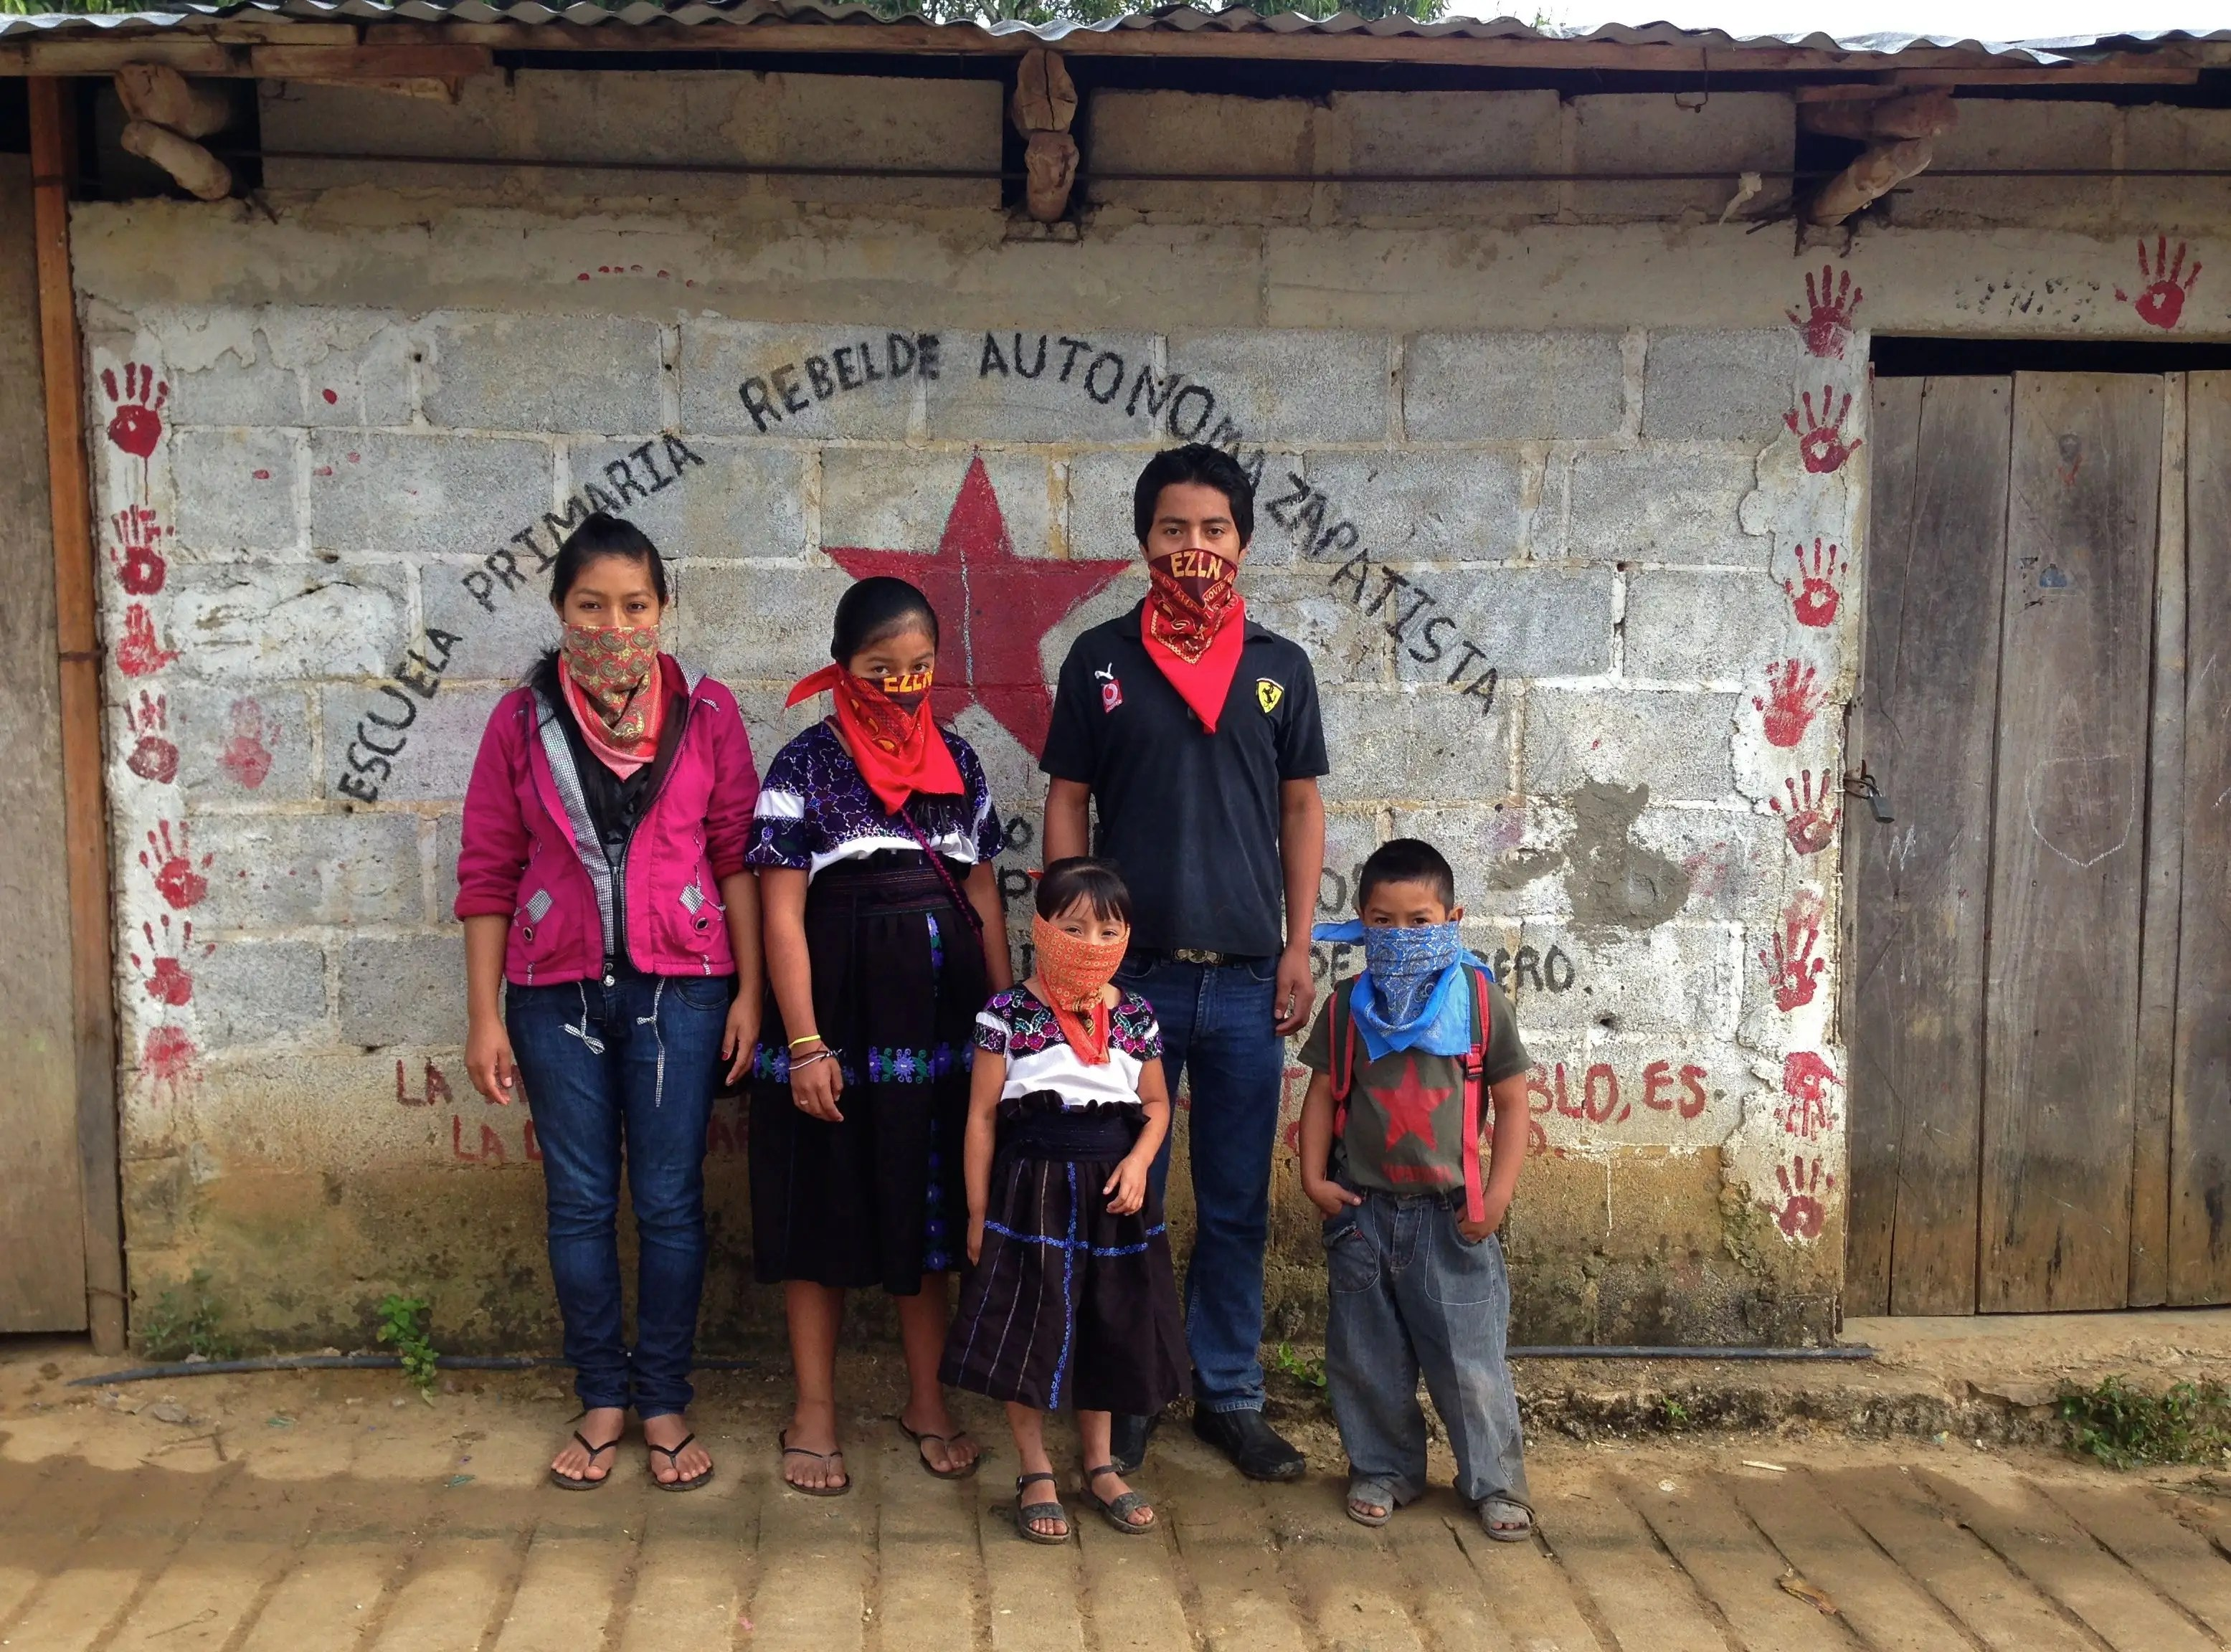 While the Zapatistas have attempted to create a life on their own terms in the mountains of Chiapas, things are far from utopian. In May 2014, a school was burnt down by other combined militant factions, leaving 15 injured and one prominent Zapatista teacher dead. Due to the isolated nature of the Zapatista regions, news coverage of this event and ones like it are scarce. Tensions still remain high.